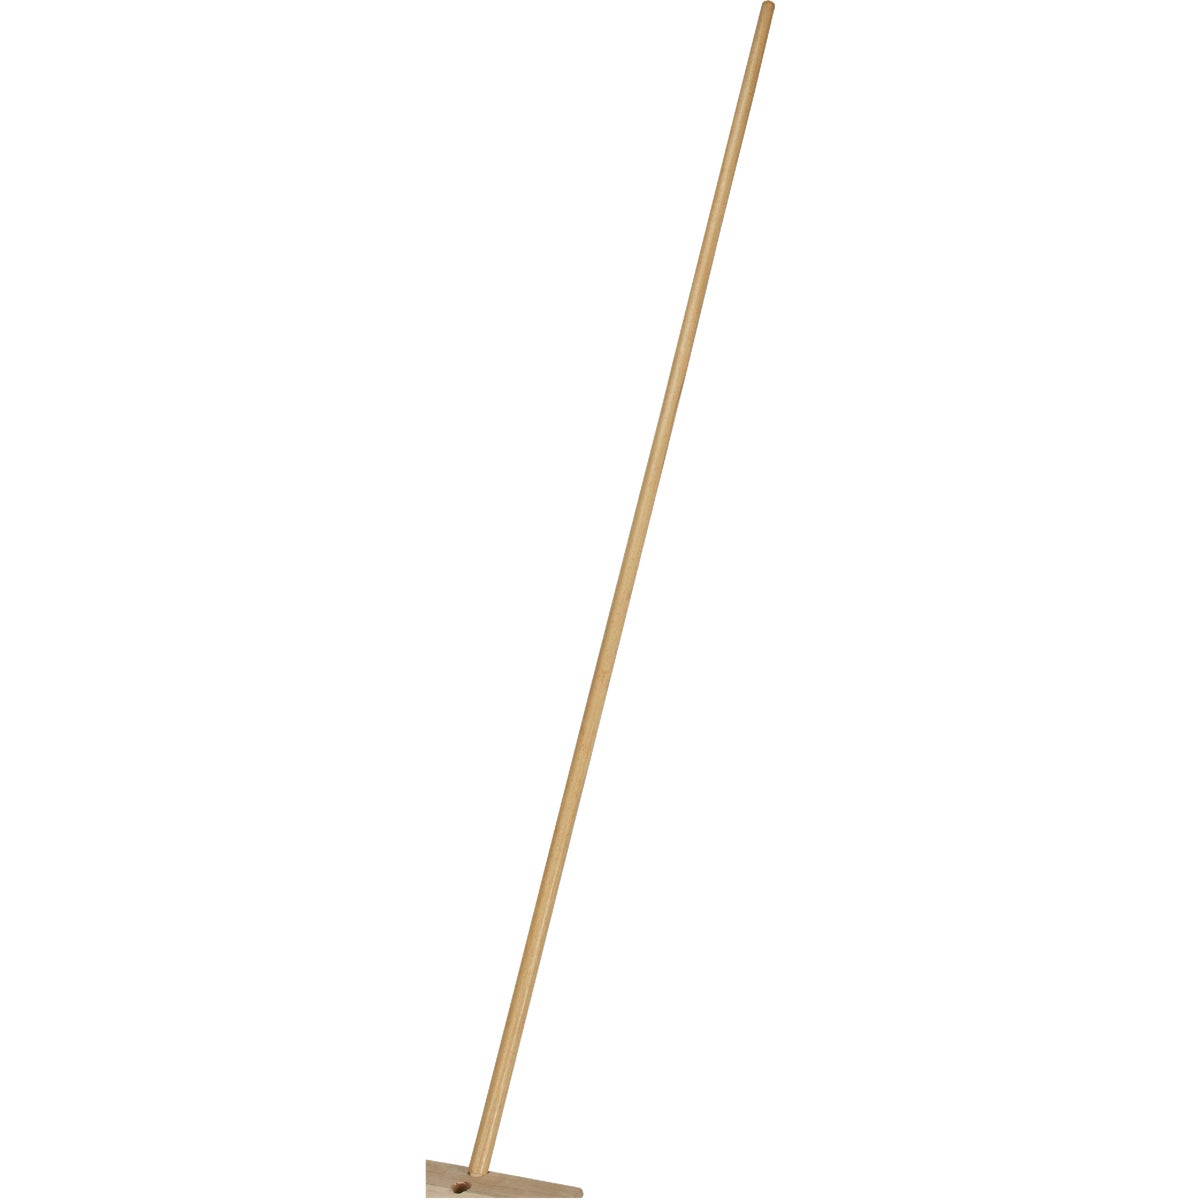 "72"" THREAD BROOM HANDLE"